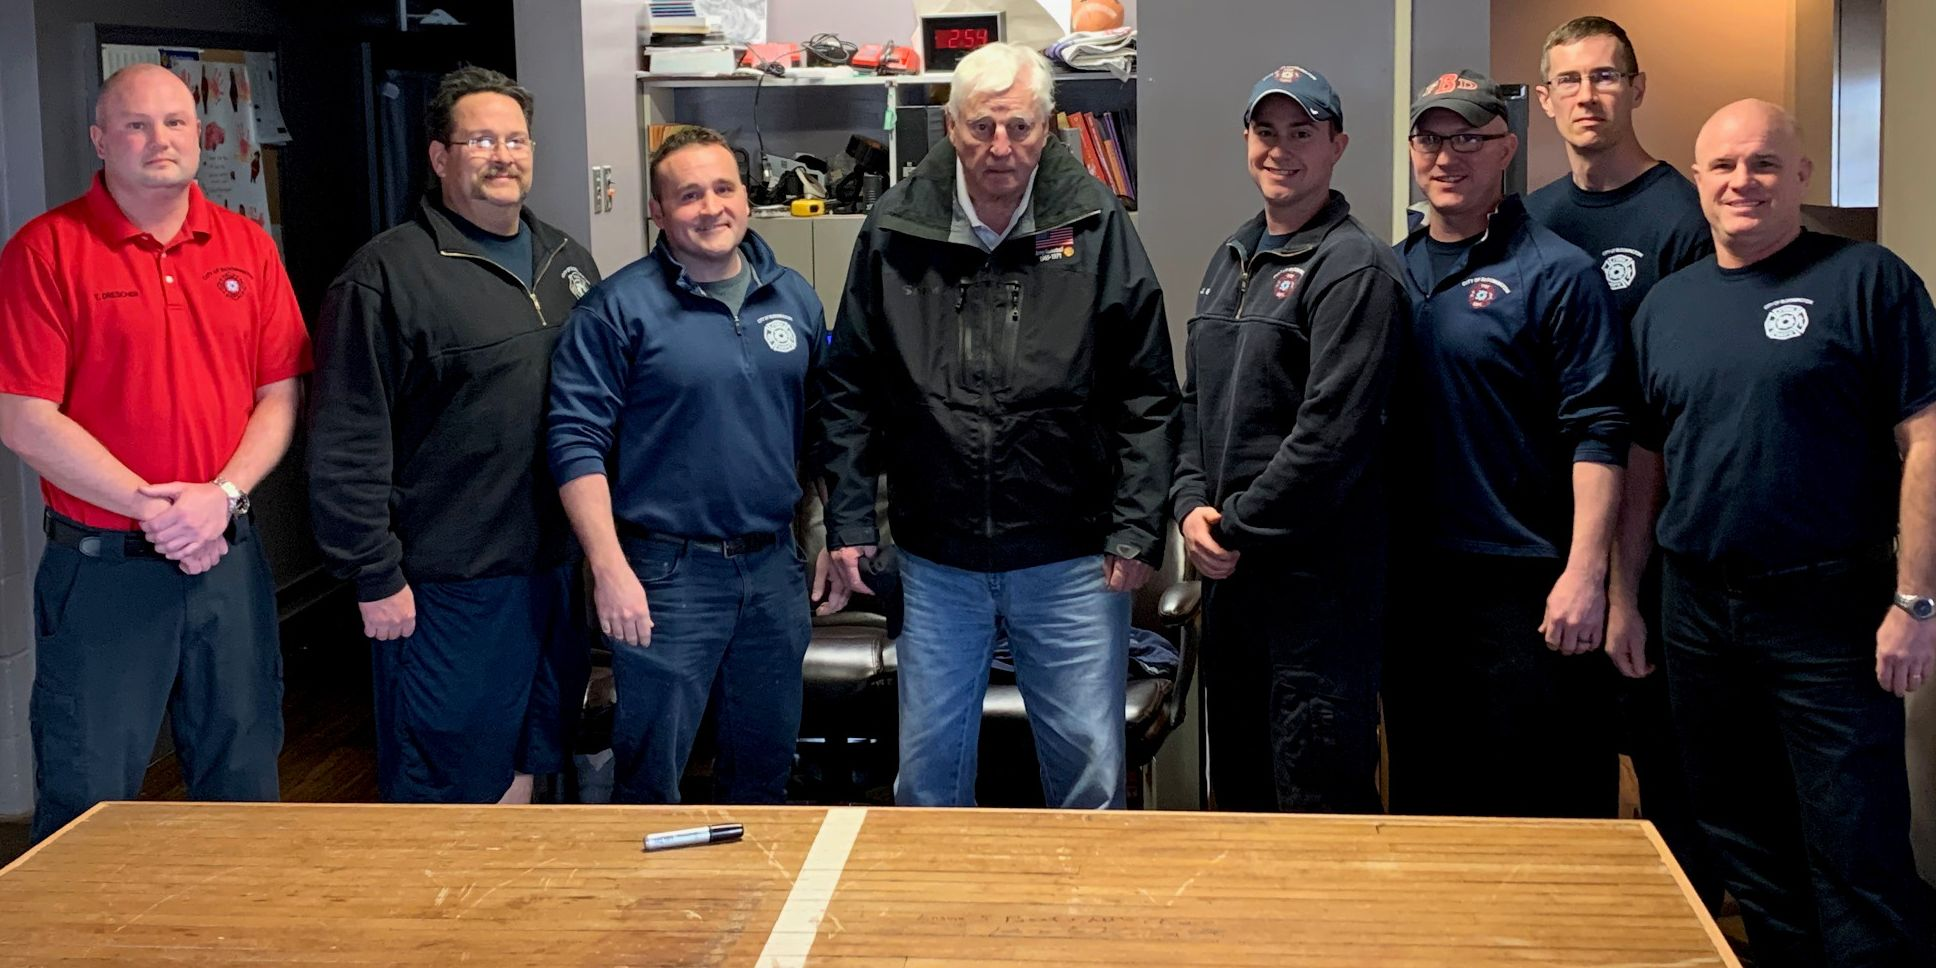 Bob Knight poses with the Station 5 firefighters